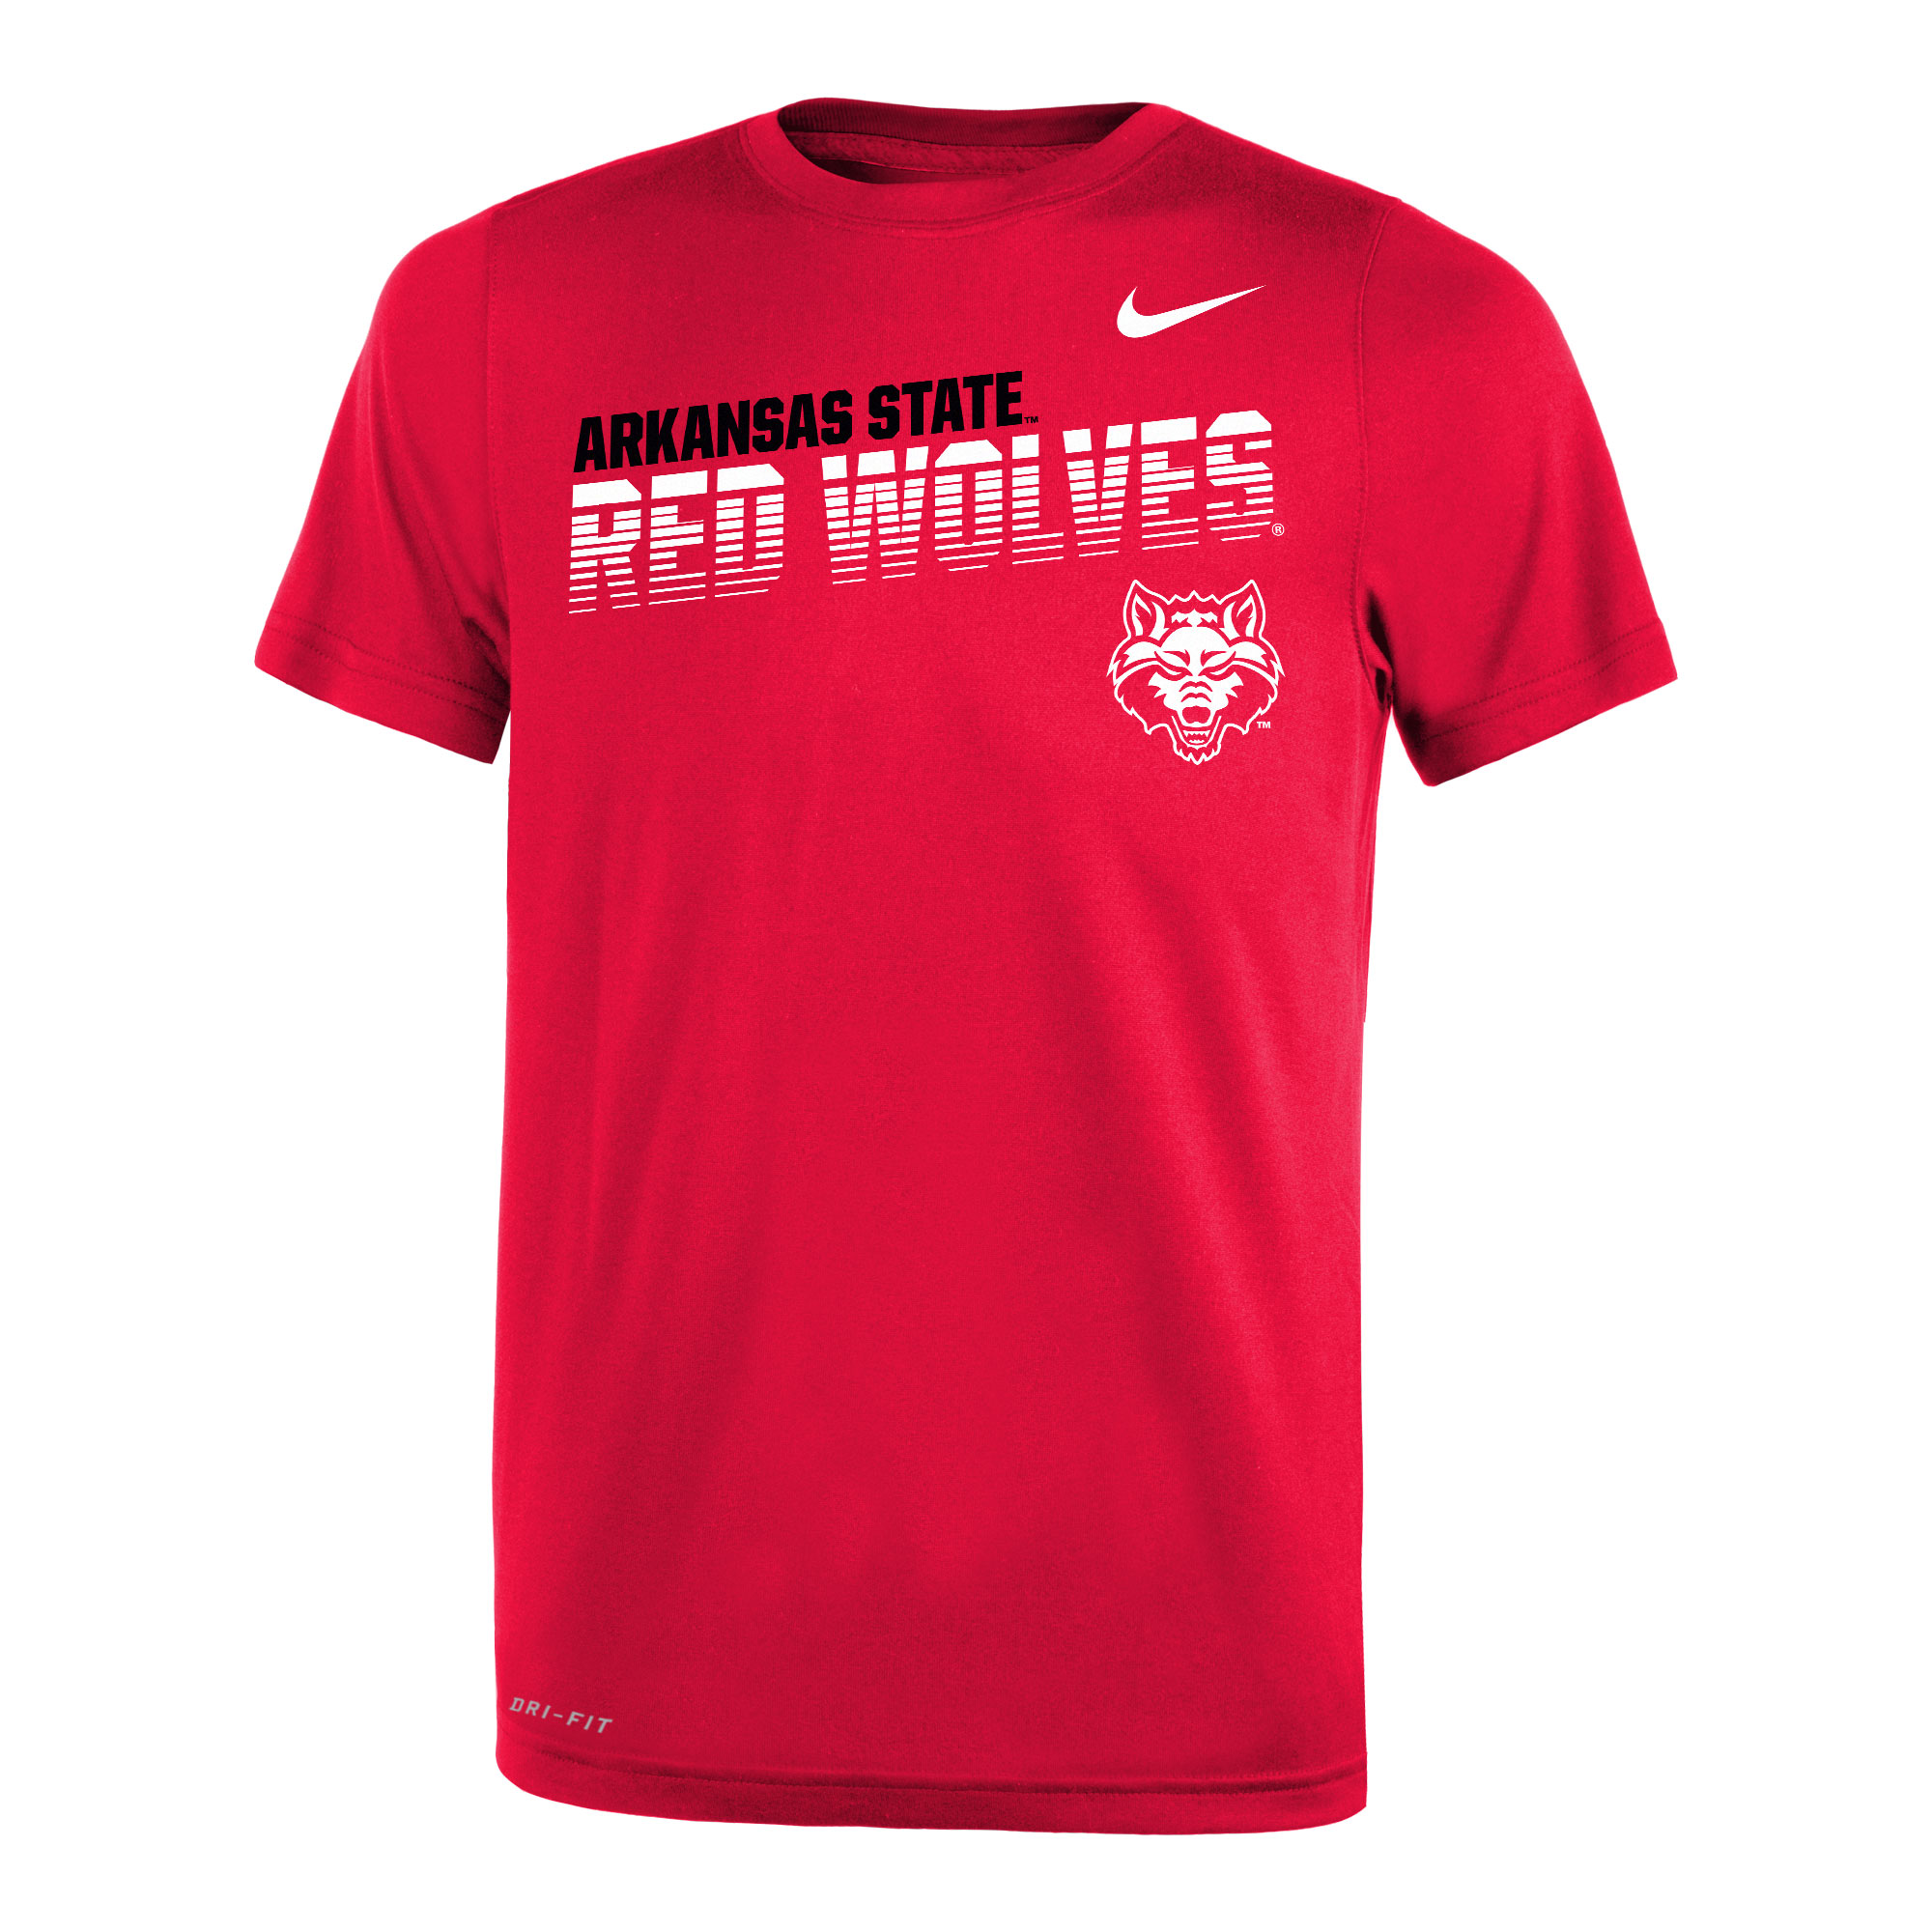 Arkansas State Youth T Shirt